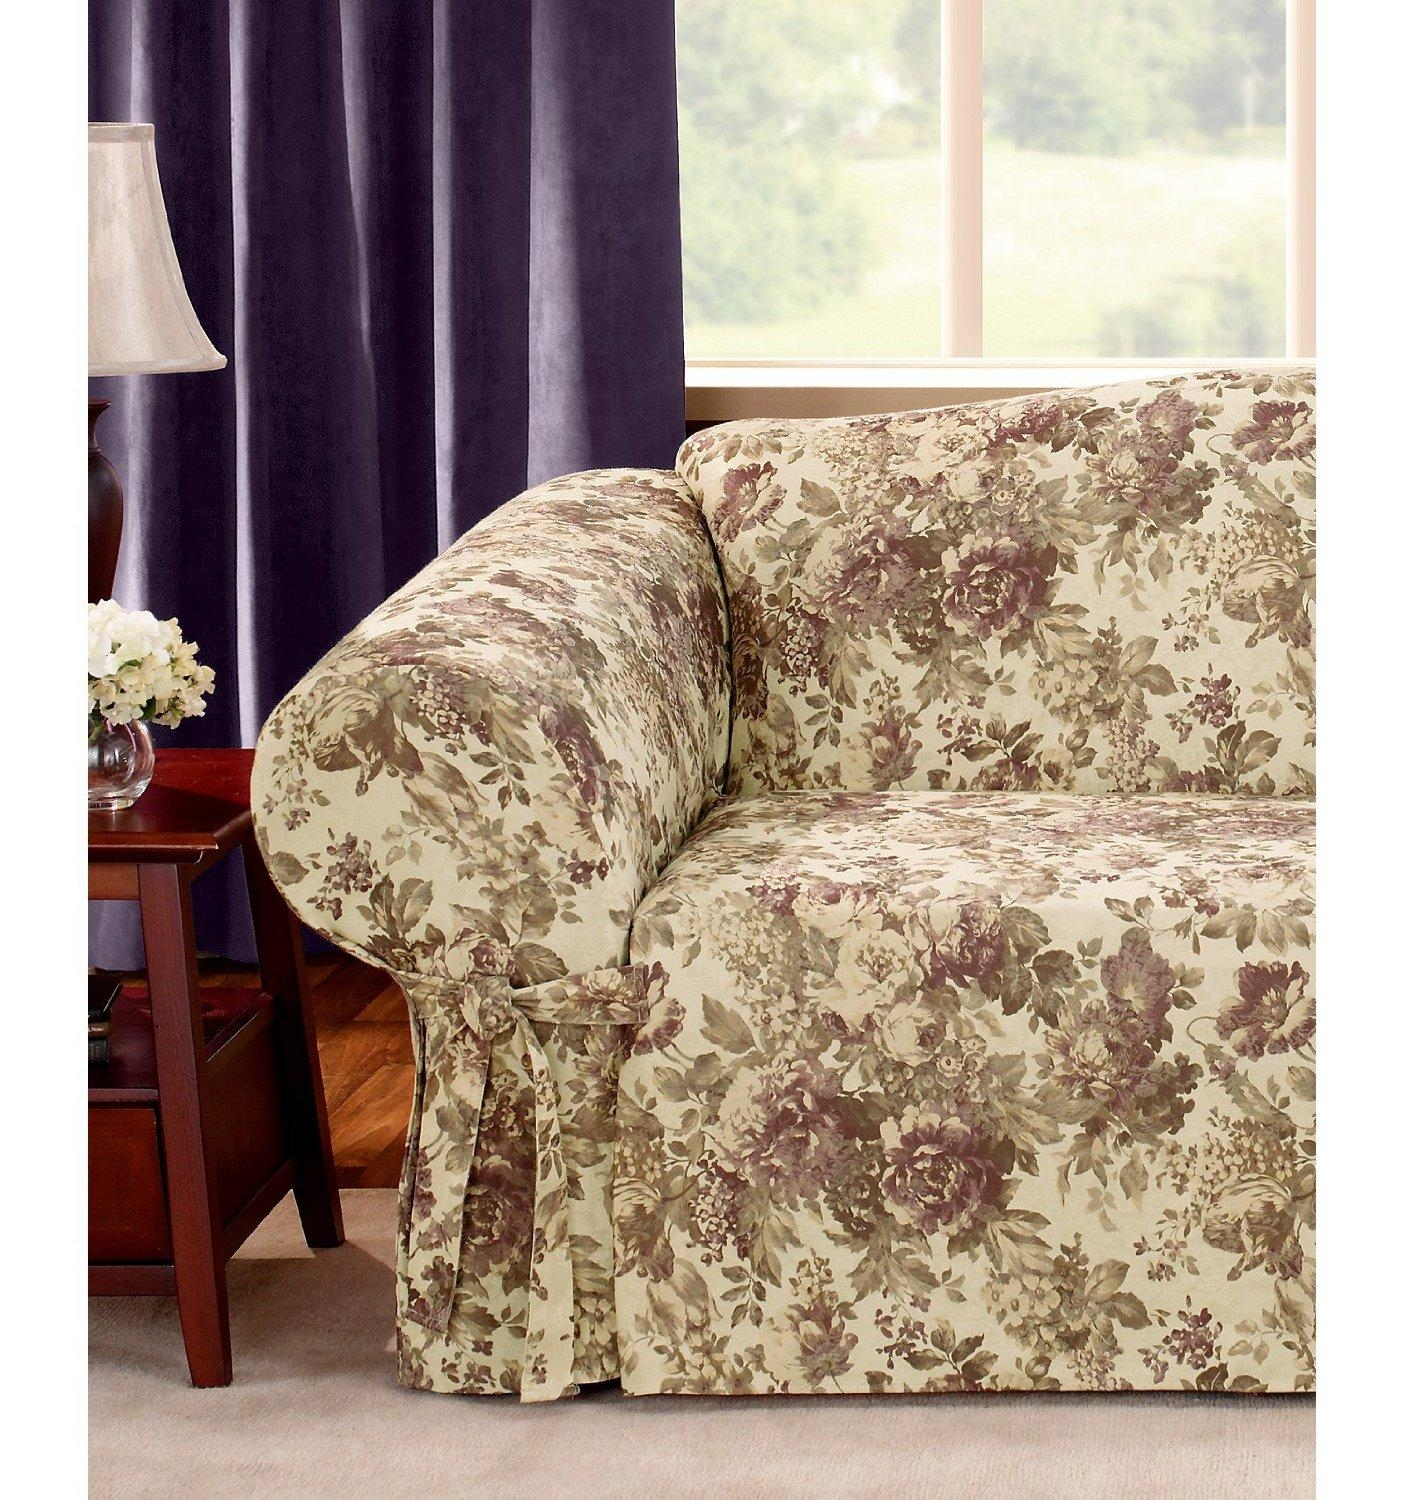 flower sofa covers leather sleeper with nailheads 20 inspirations floral slipcovers ideas